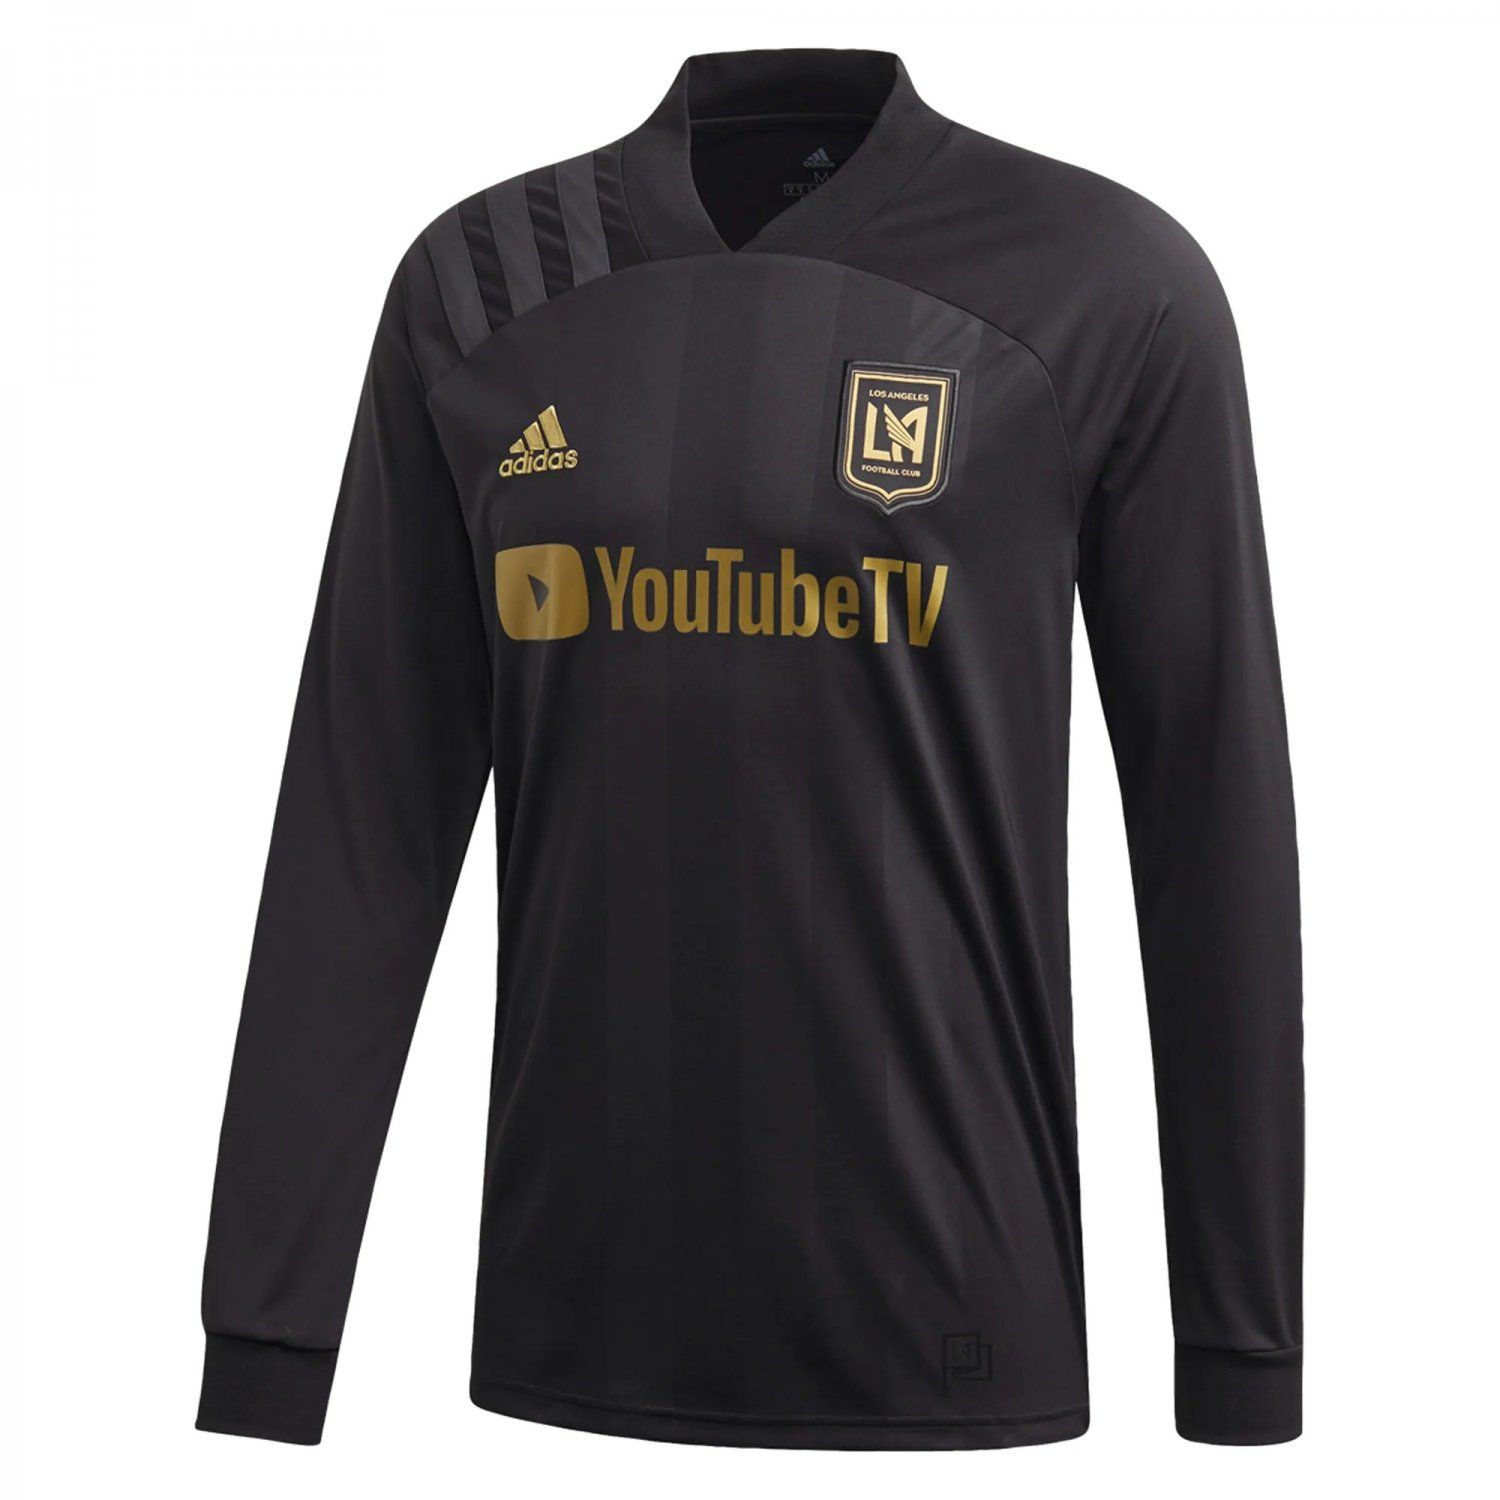 Lafc 2020 2021 Long Sleeve Home Jersey By Adidas Black In 2020 Black Adidas Long Sleeve Tshirt Men Long Sleeve